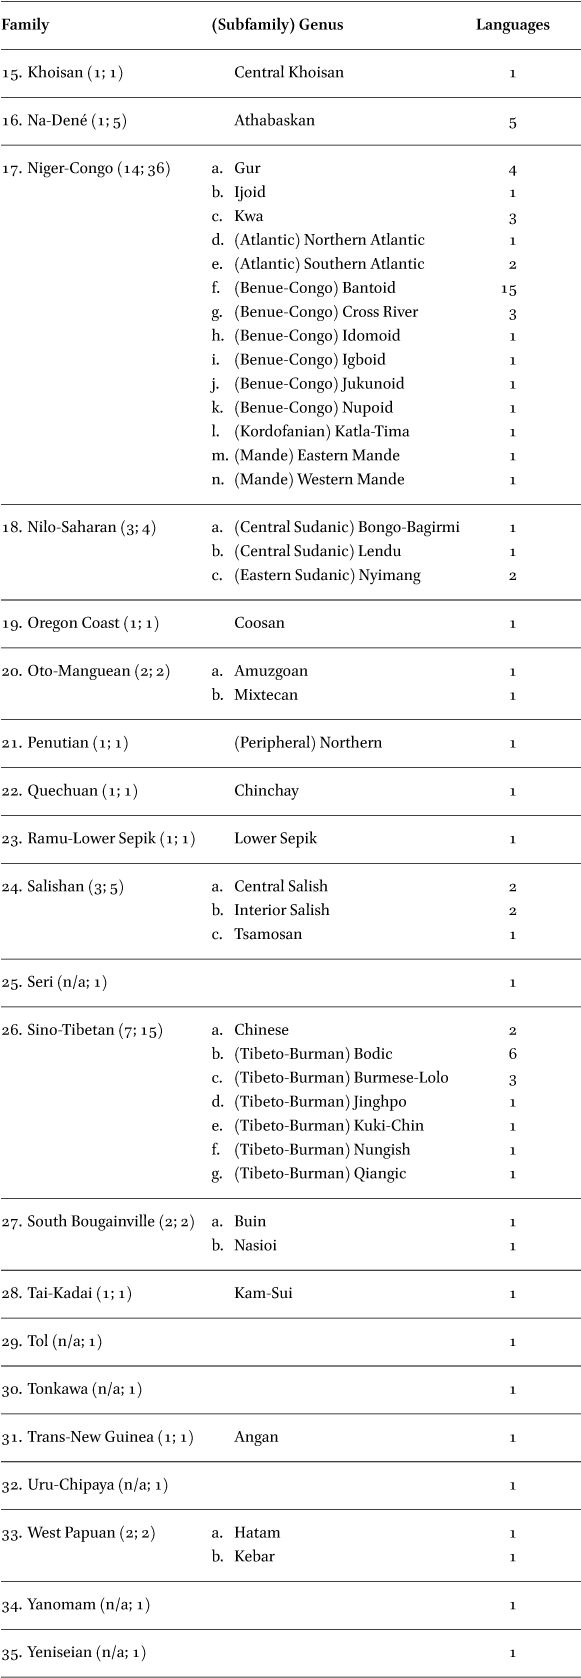 The Typology of PIE Syllabic Sonorants in: Indo-European Linguistics